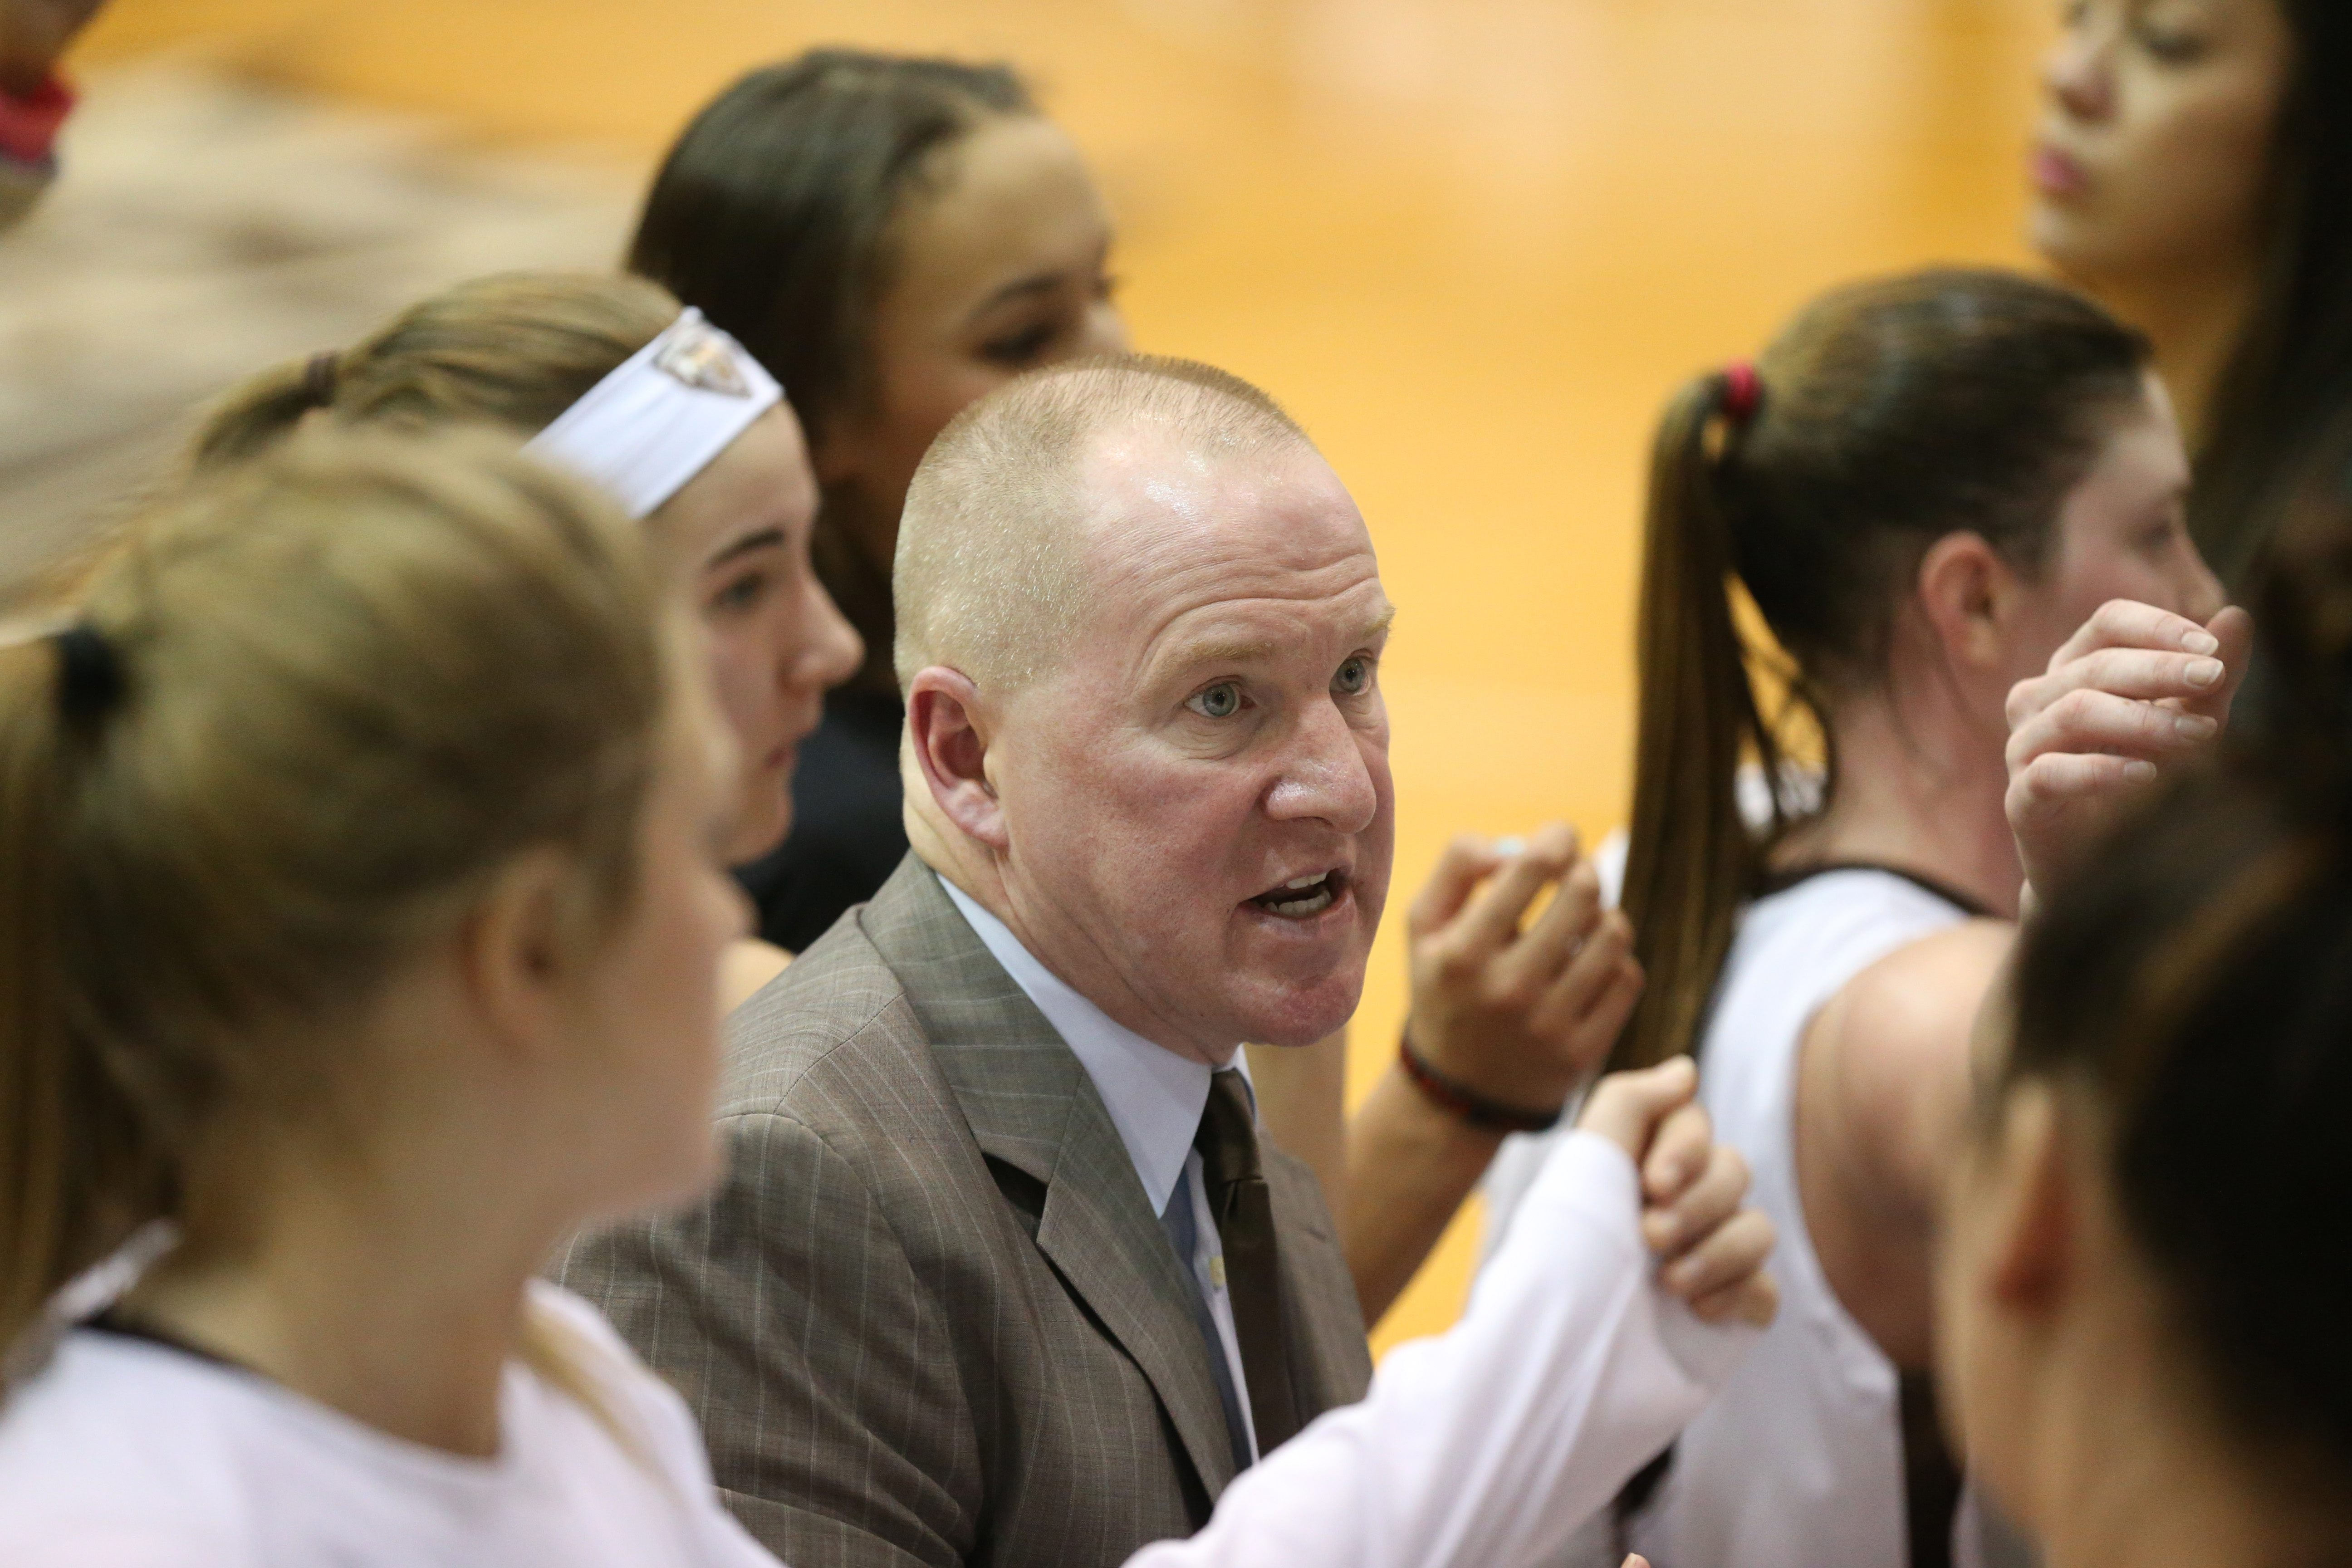 St. Bonaventure and coach Jim Crowley are aiming to rediscover the team than won 16 consecutive games this season.